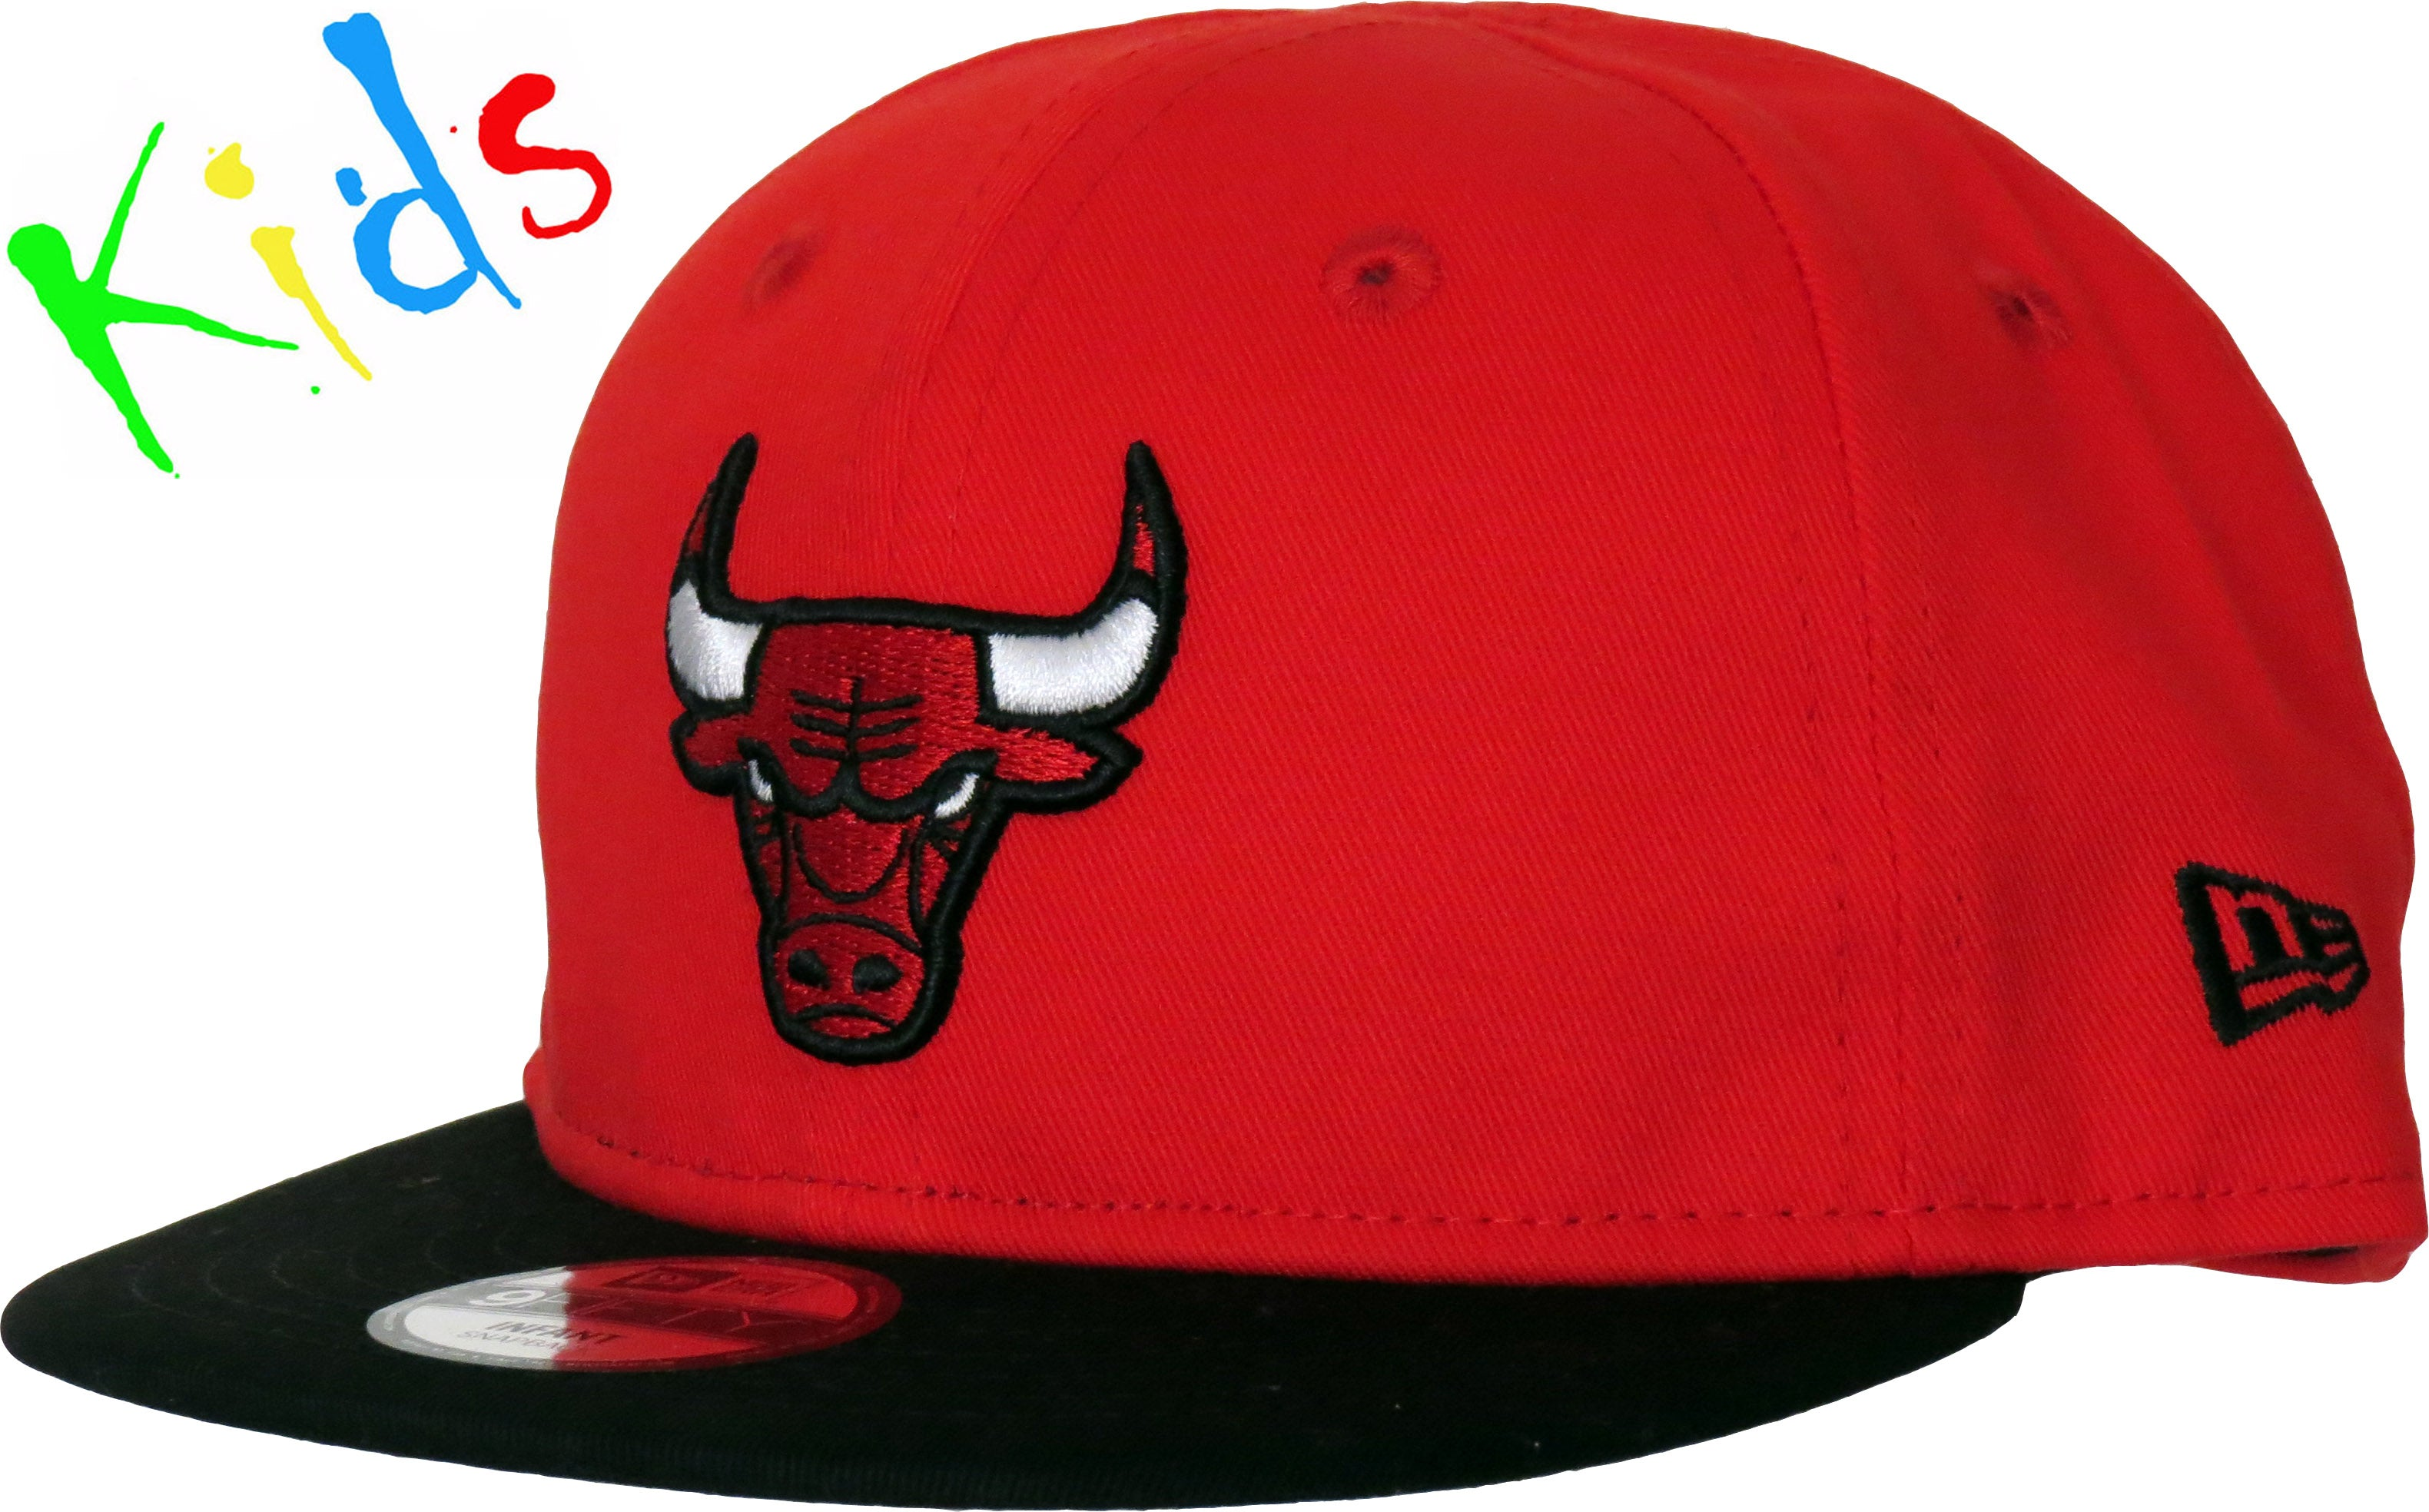 7a32af54dcc Chicago Bulls New Era 950 Kids Essential Infant Snapback Cap ( 0 - 2 years  old ...